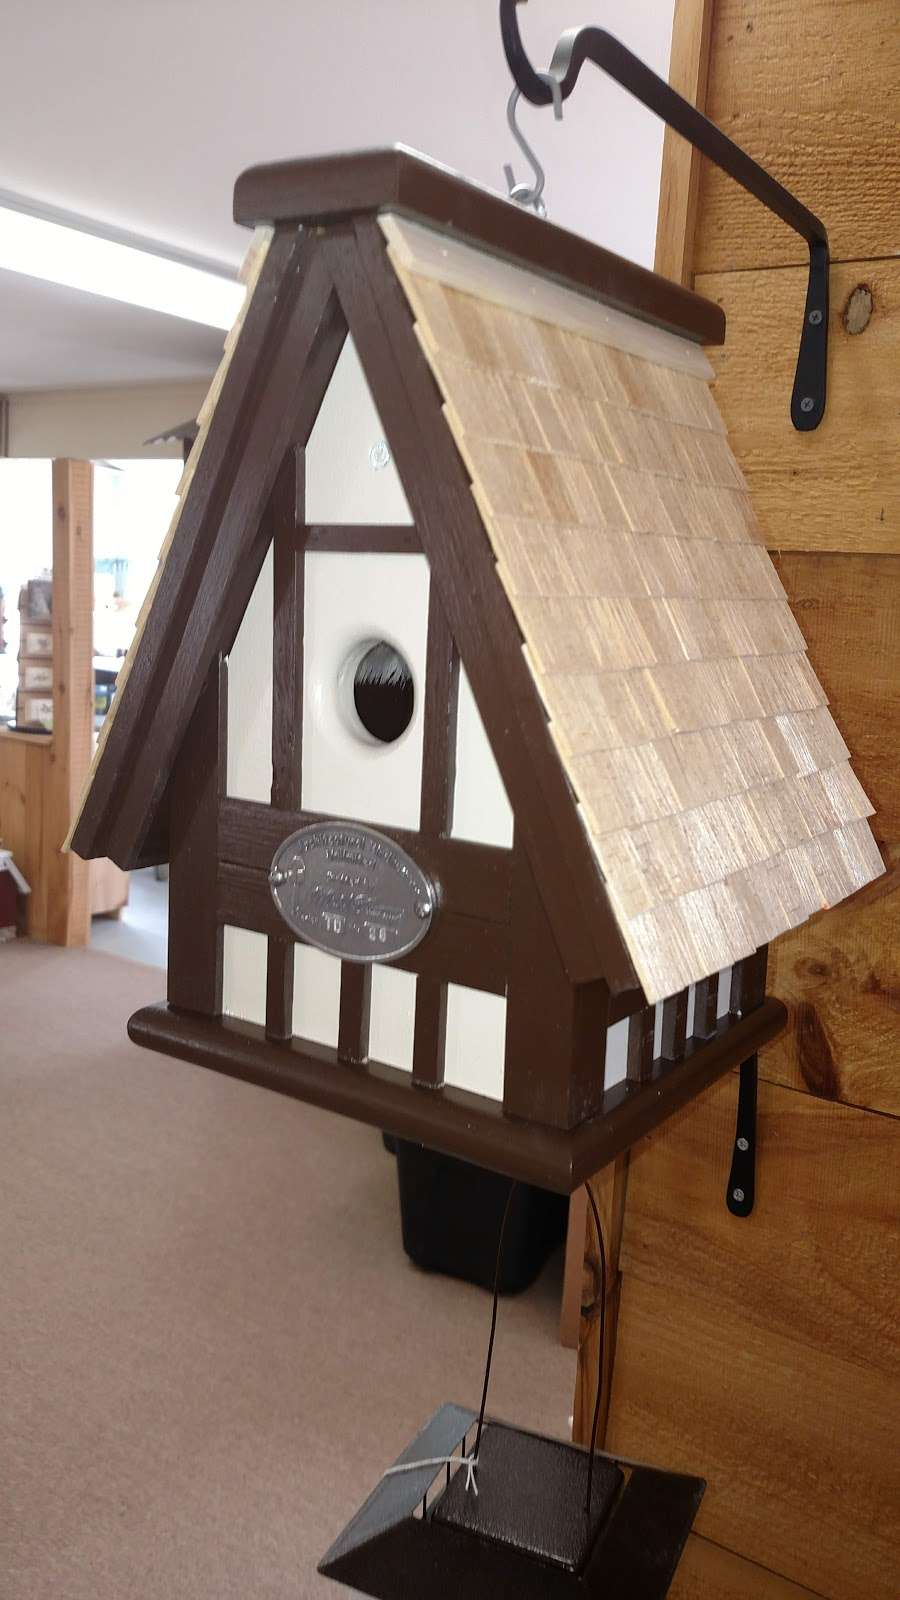 Architectural Birdhouses Unlimited - pet store  | Photo 3 of 10 | Address: 276 NH-101, Amherst, NH 03031, USA | Phone: (603) 554-8869